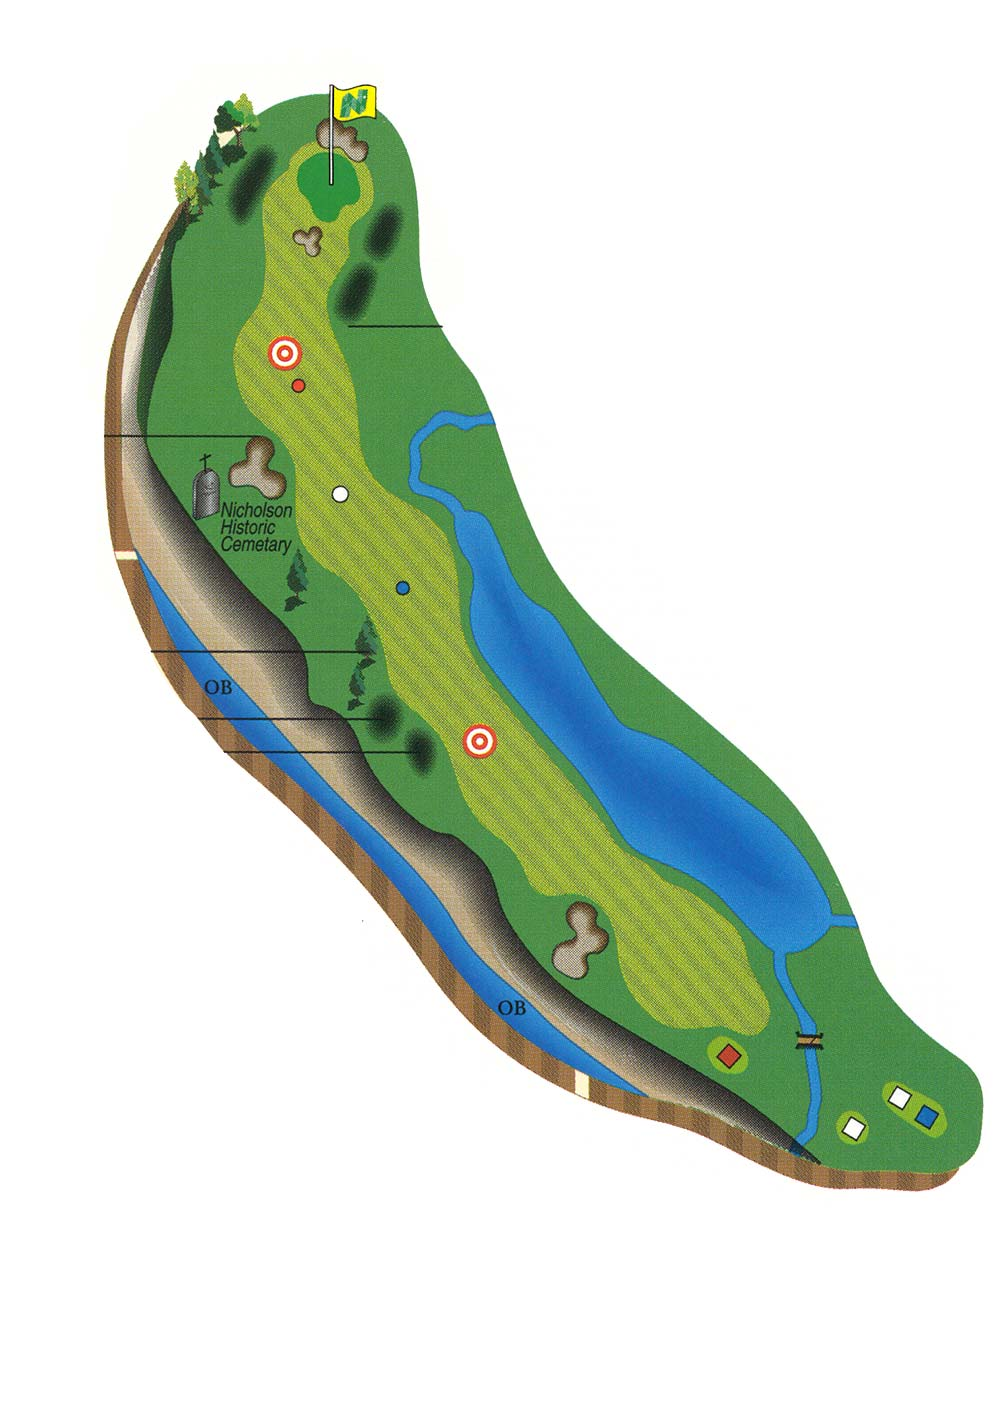 Course Description - Hole 5